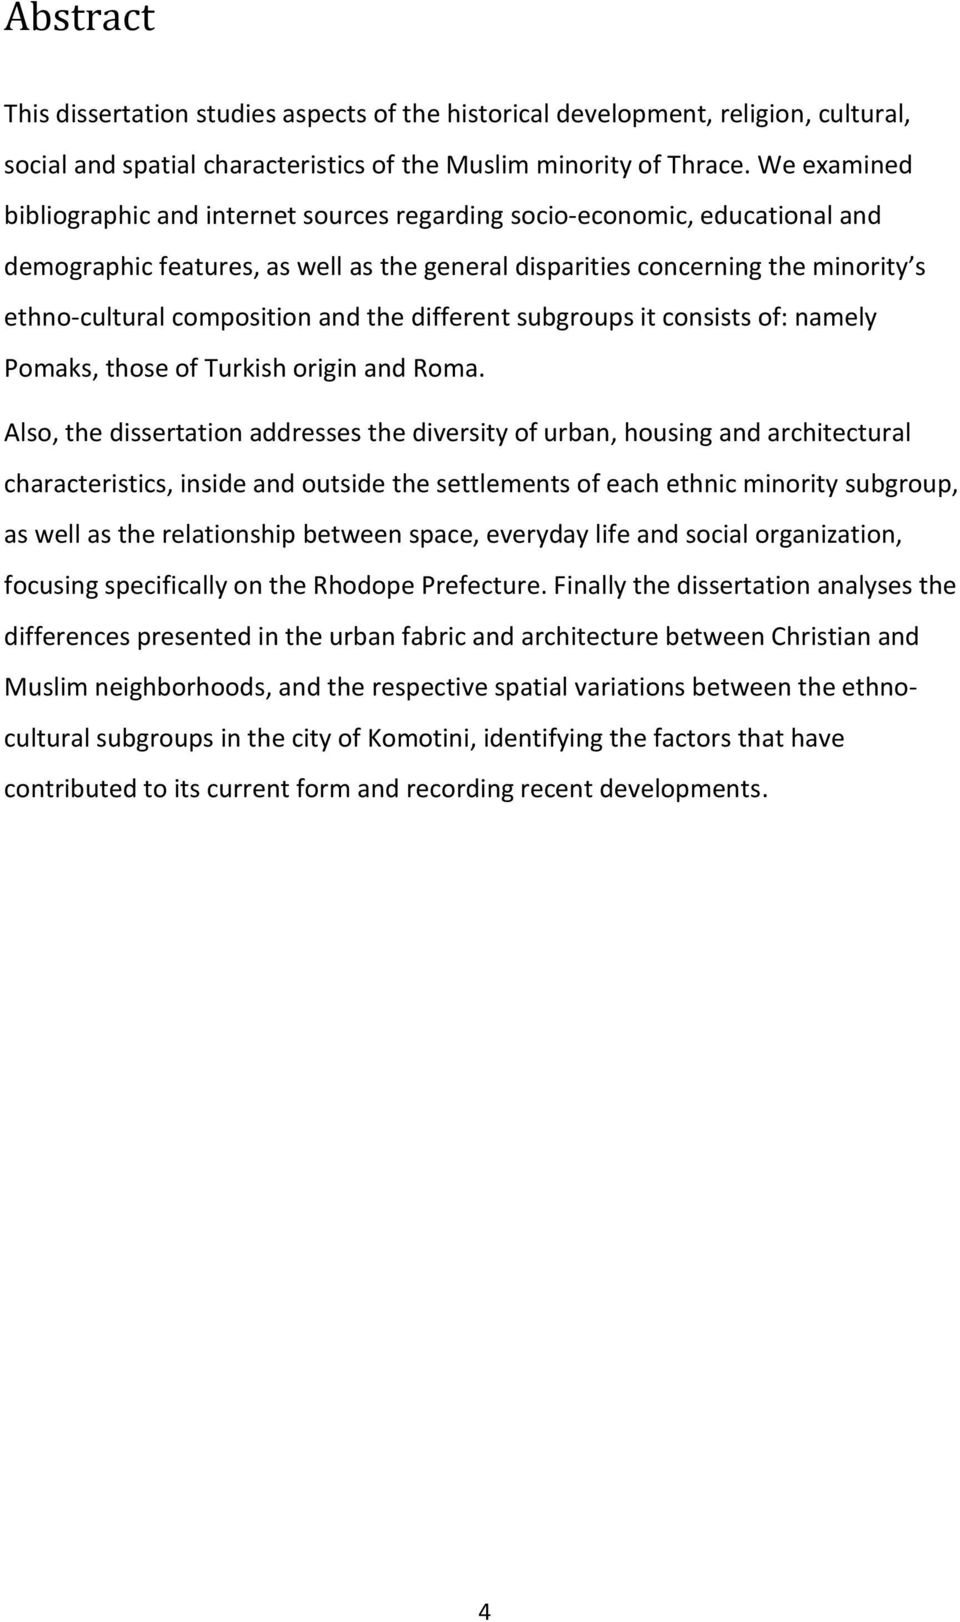 and the different subgroups it consists of: namely Pomaks, those of Turkish origin and Roma.